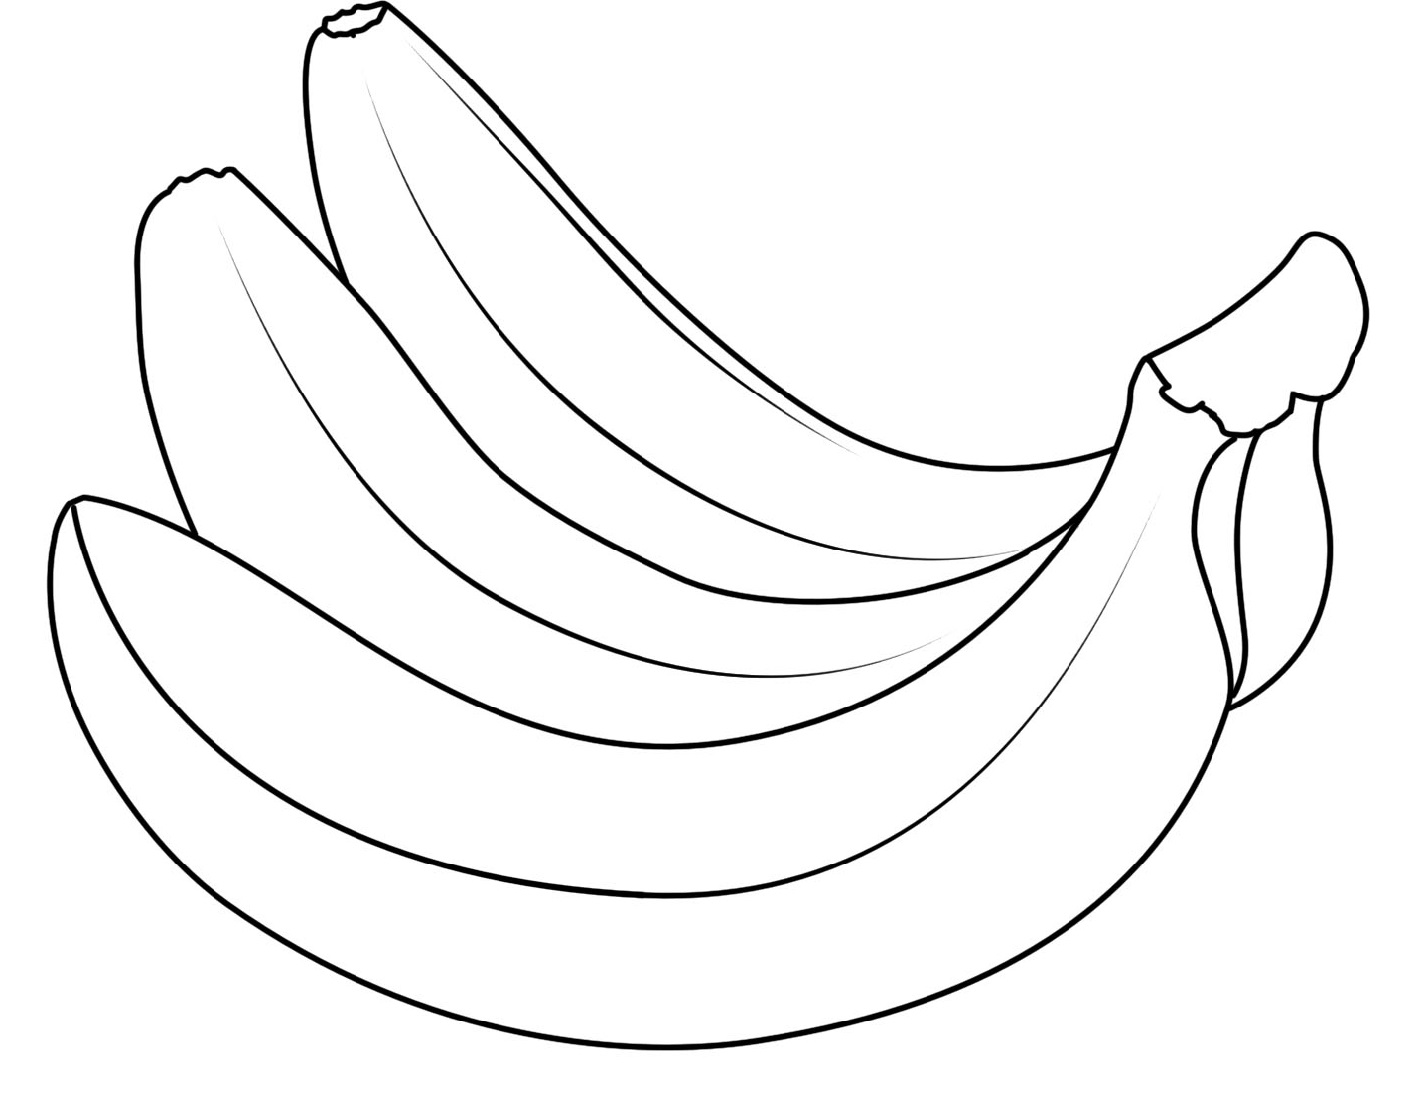 fruit-coloring-pages-banana